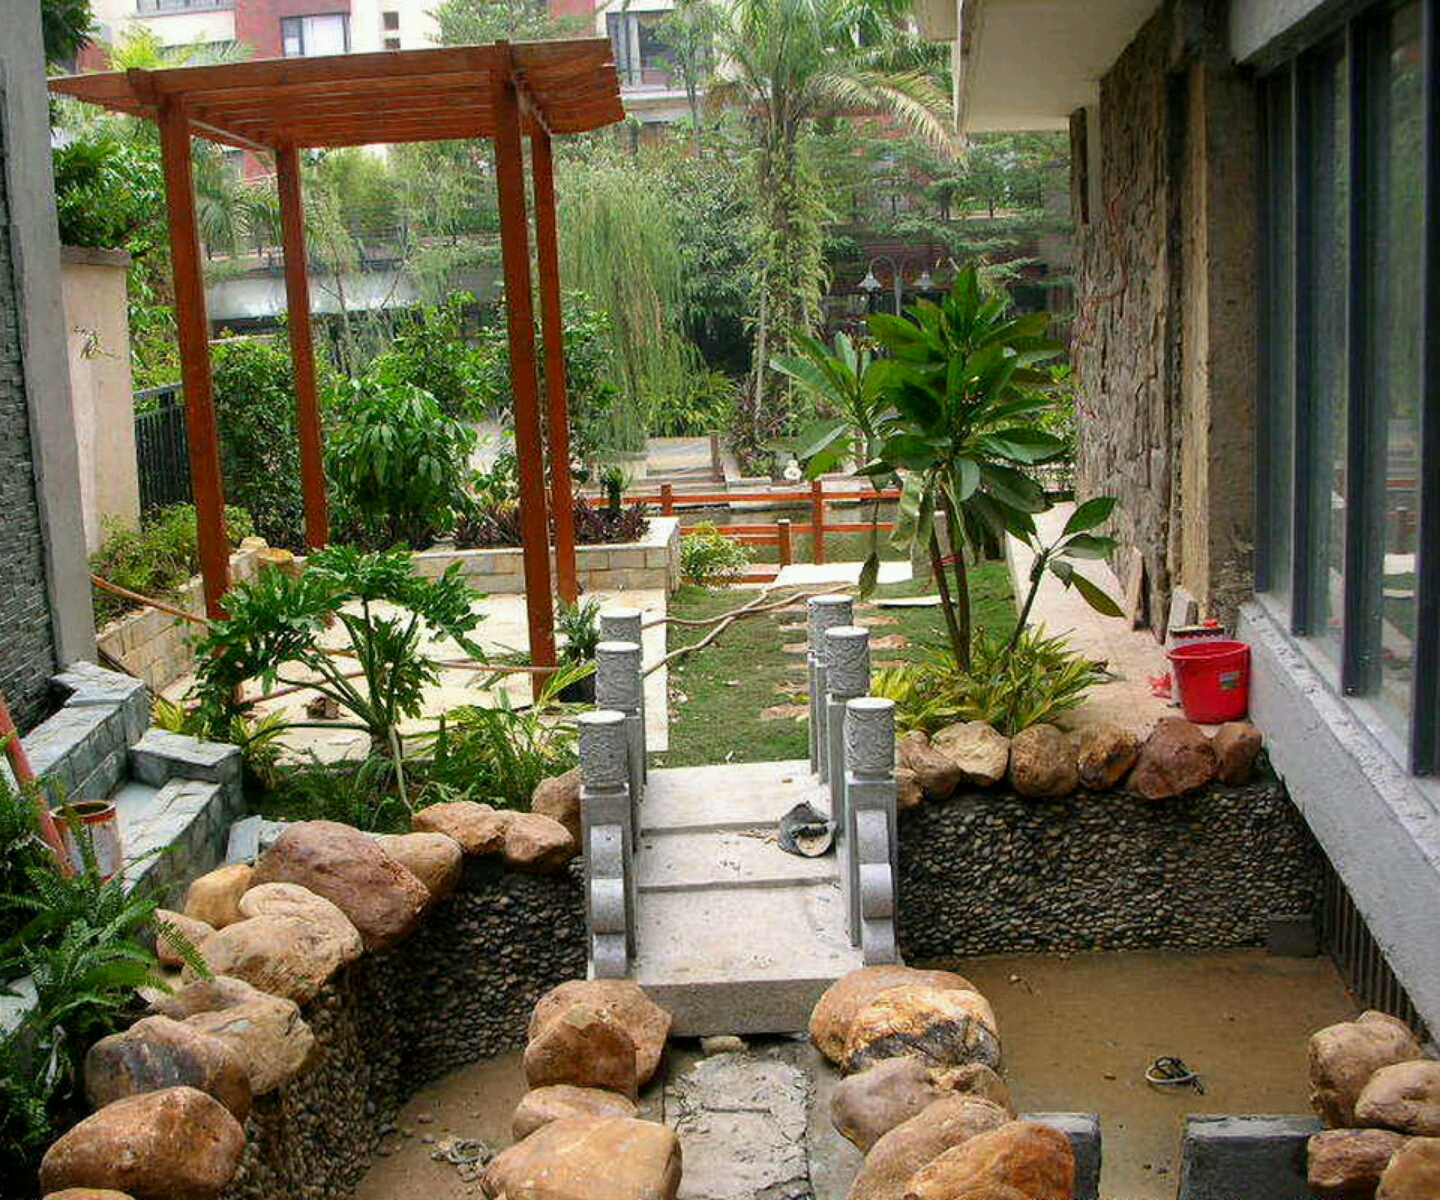 Home Gardening Design Ideas: Beautiful Home Gardens Designs Ideas.